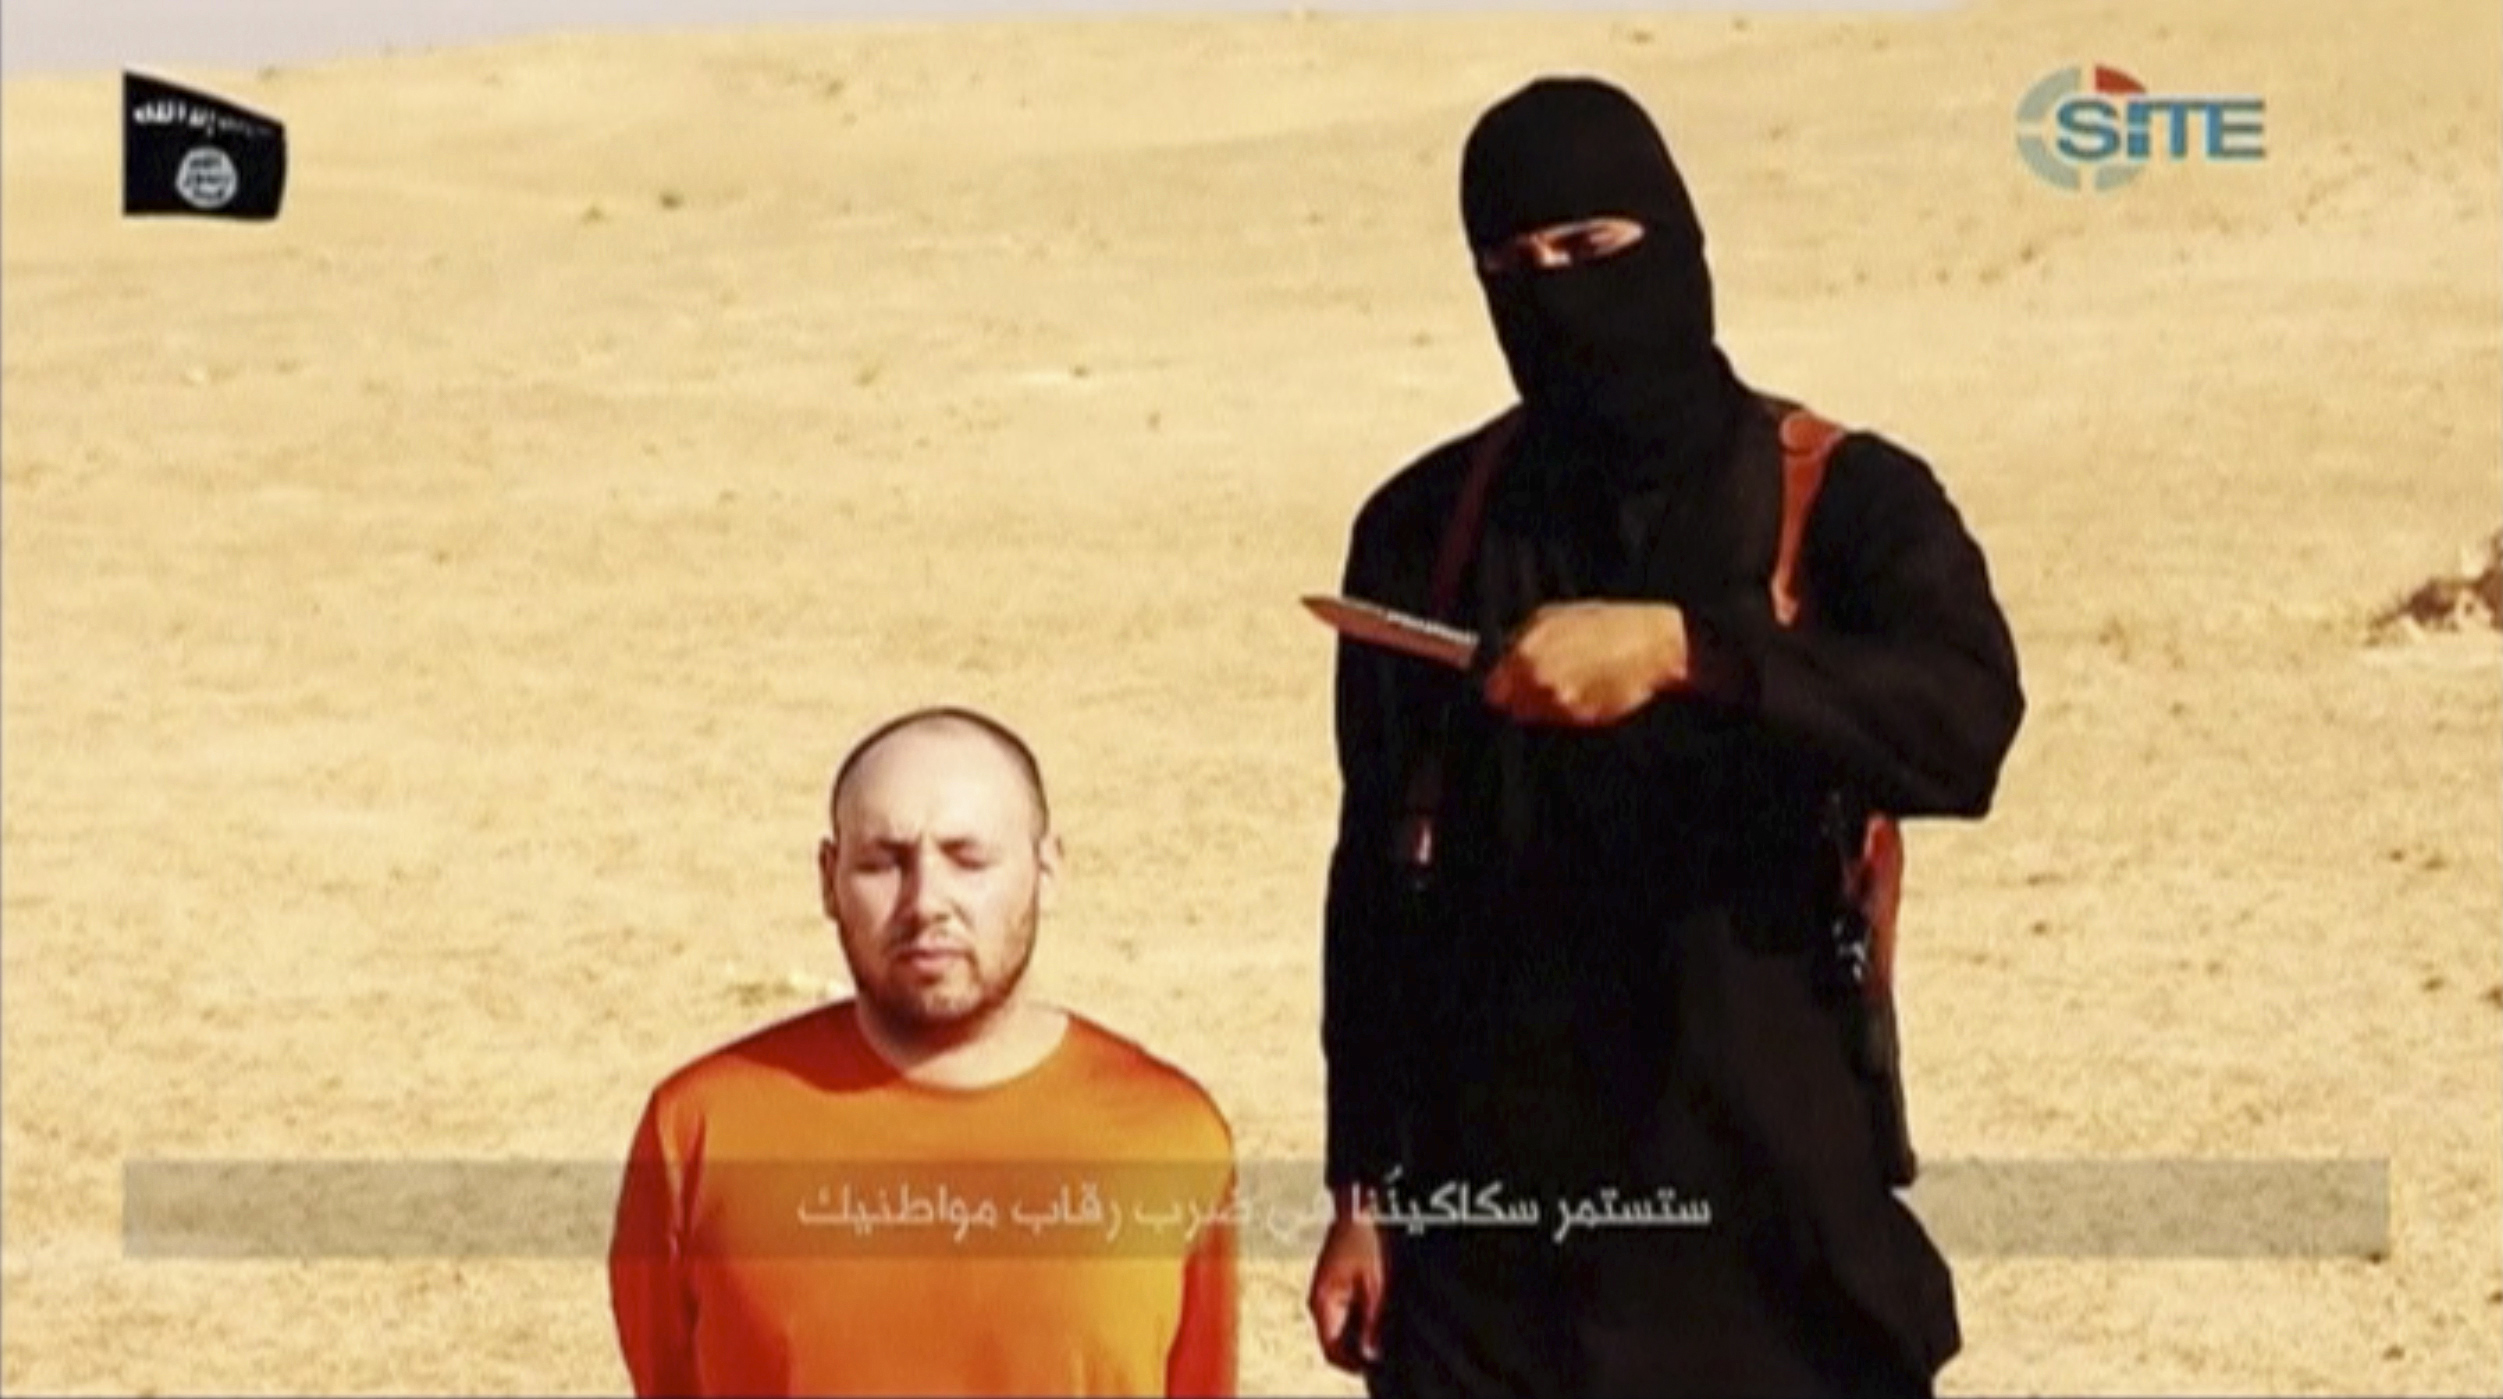 """Jihadi John"" aka Muhammad Jassim was a British citizen who joined ISIS and preformed the group's infamous on camera beheadings. (REUTERS/Reuters TV)"